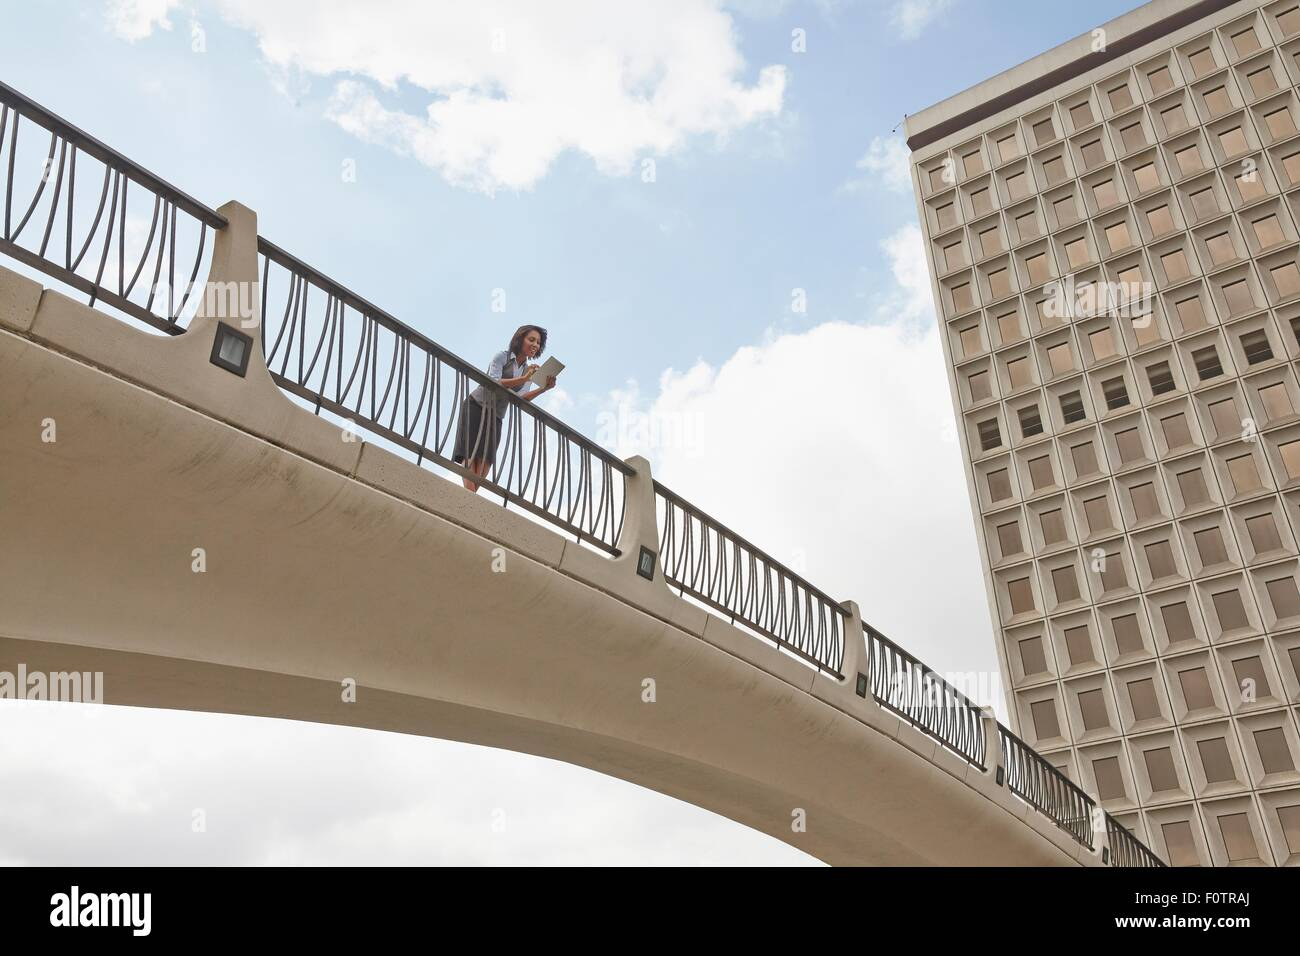 Low angle view of person on footbridge, City Hall East, Los Angeles, California, USA - Stock Image